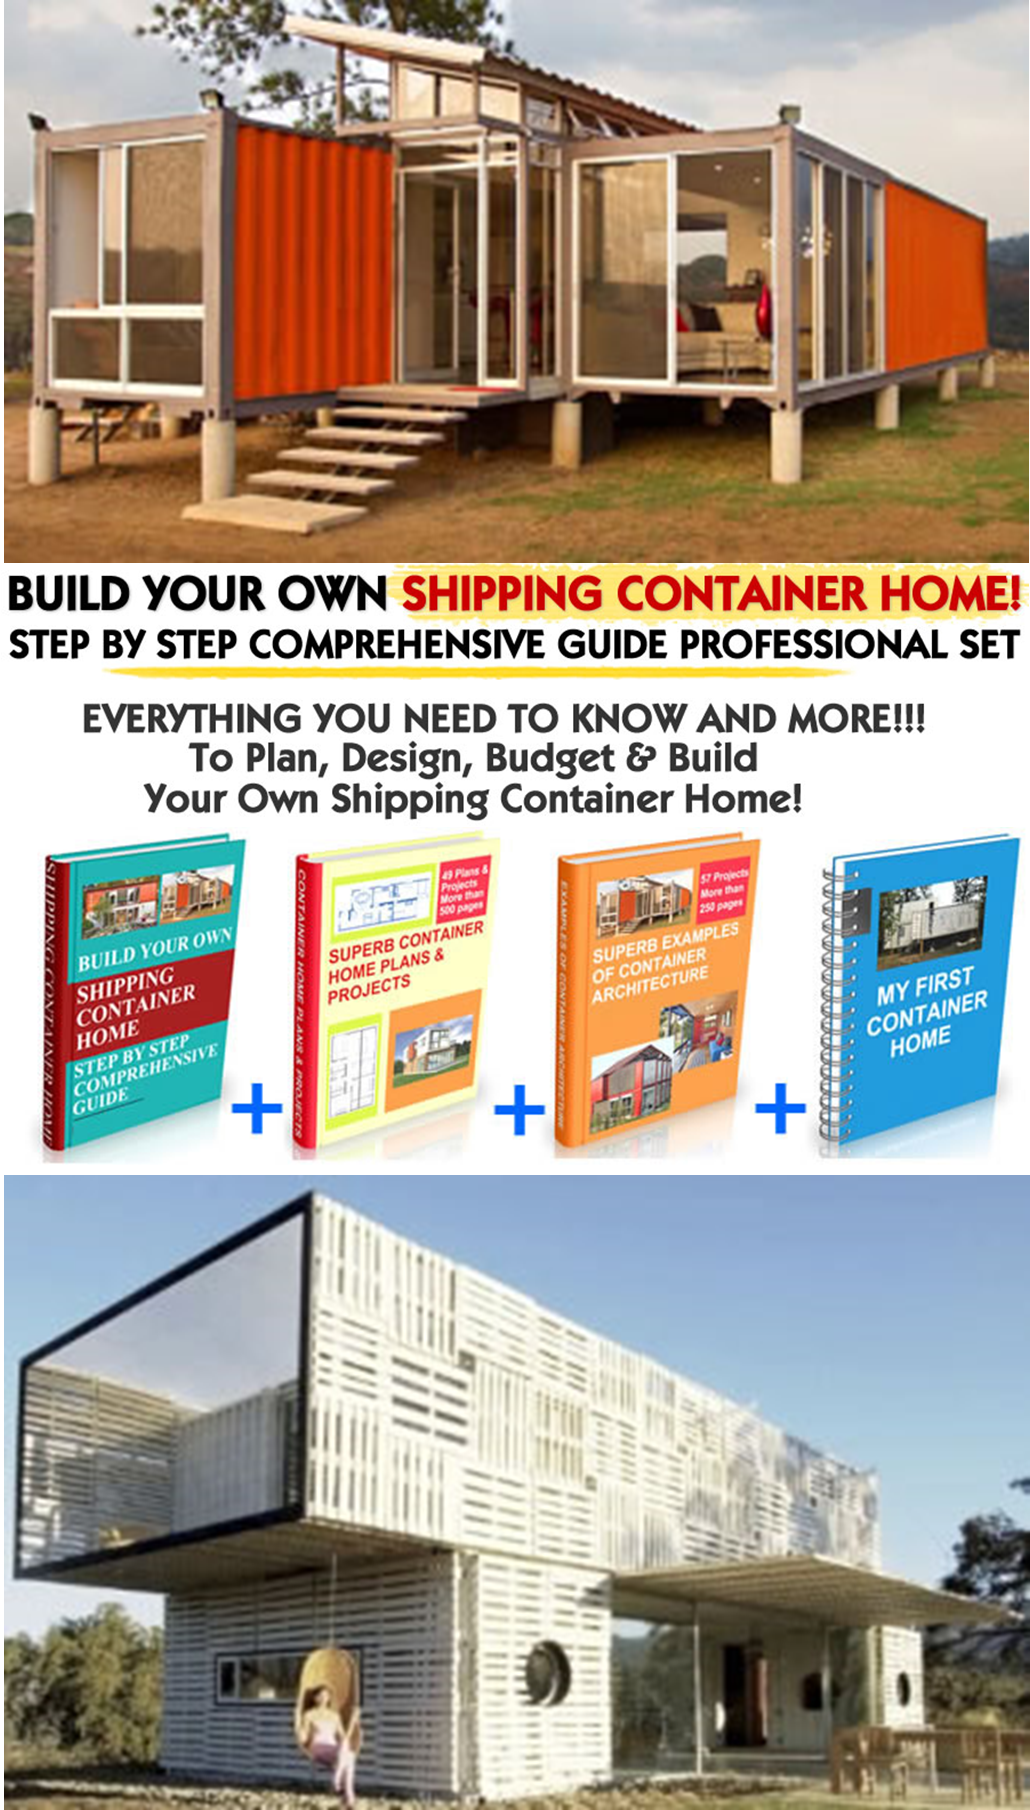 Build Your Own Shipping Container Home Comprehensive Guide In 2020 Container House Shipping Container Homes Container House Plans